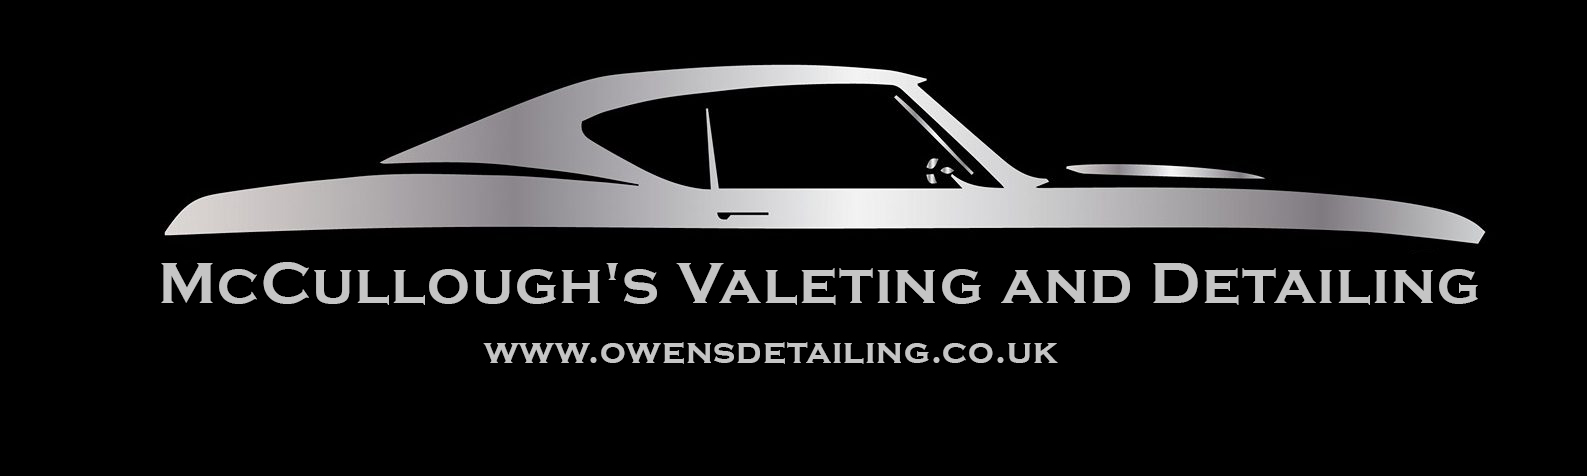 Owens Detailing